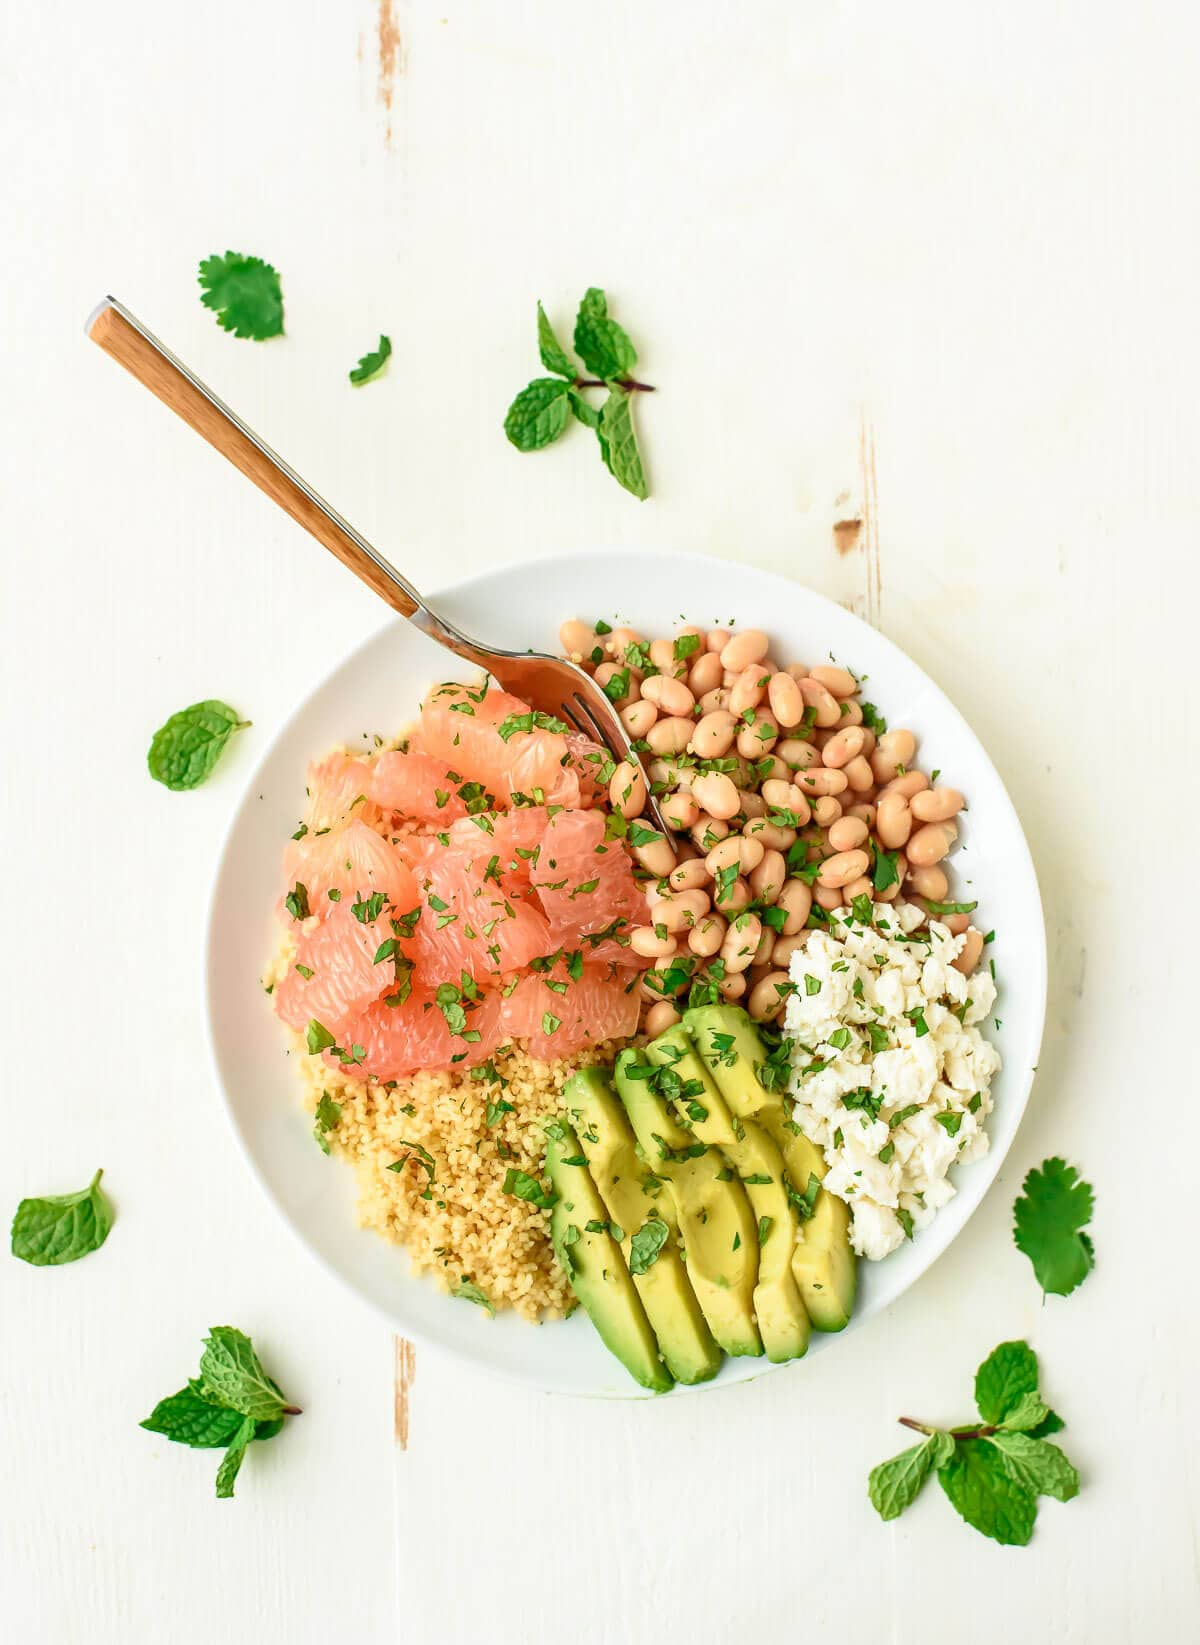 Avocado Couscous Grapefruit Salad with White Beans. A healthy, filling salad recipe that's easy to make and perfect for a light lunch or side.